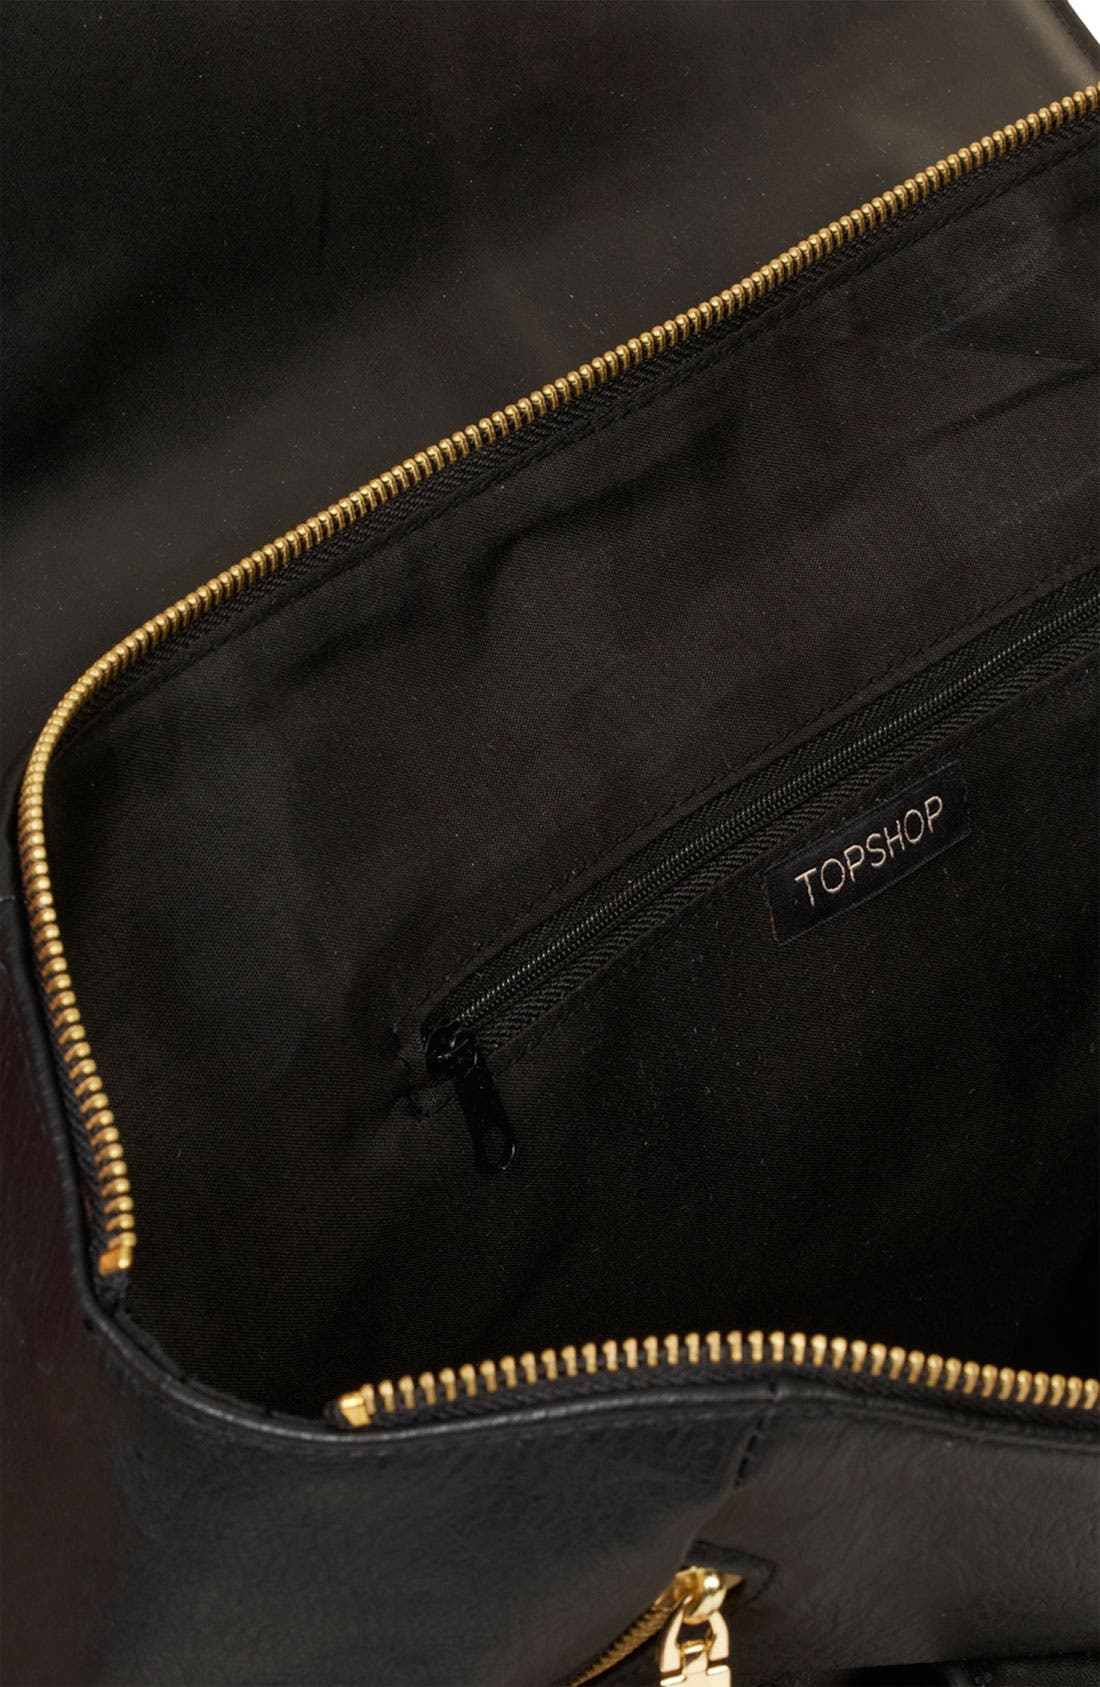 TOPSHOP, Winged Tote, Alternate thumbnail 4, color, 001